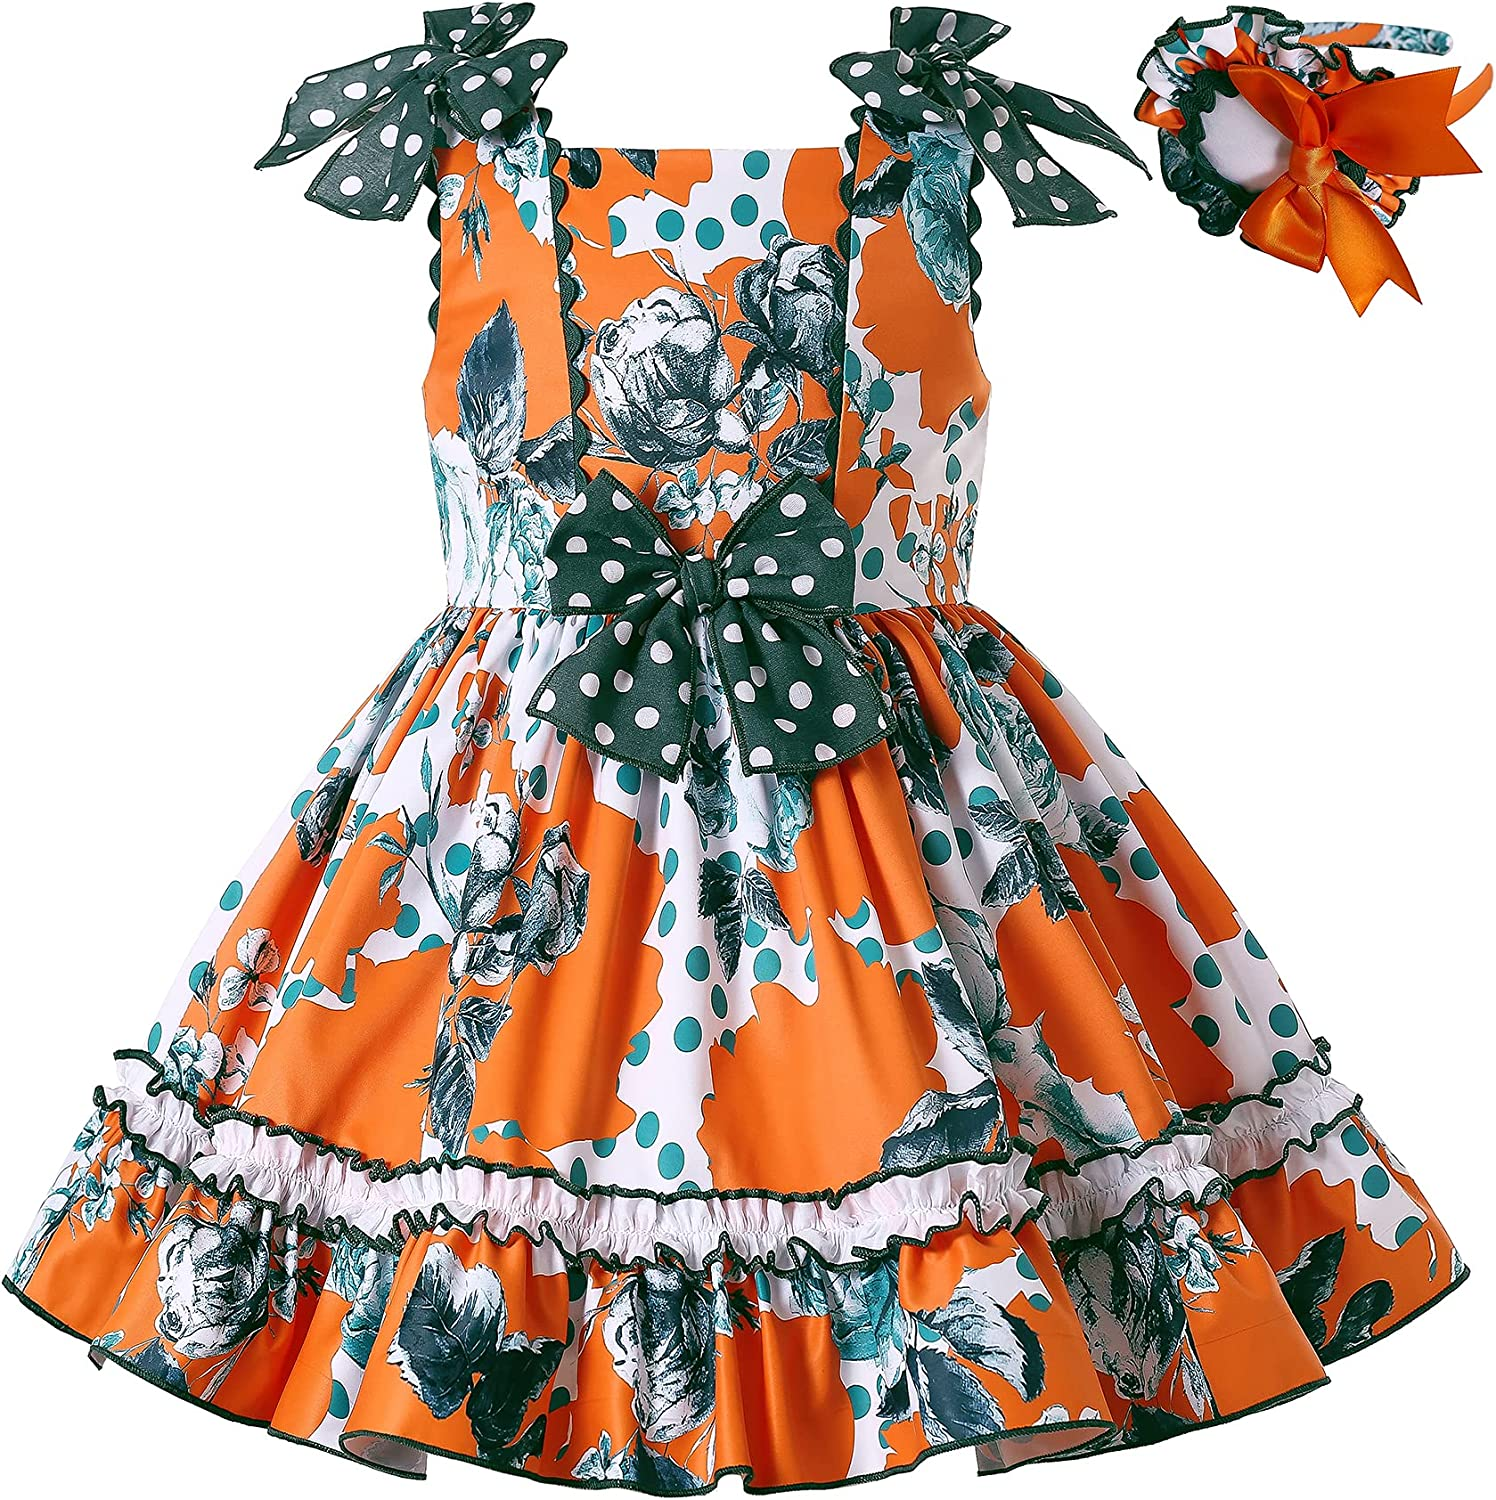 Pettigirl Girls Elegant Floral Sleeveless Skirts Clothing Set Toddler Cute Casual Dresses with Headpiece